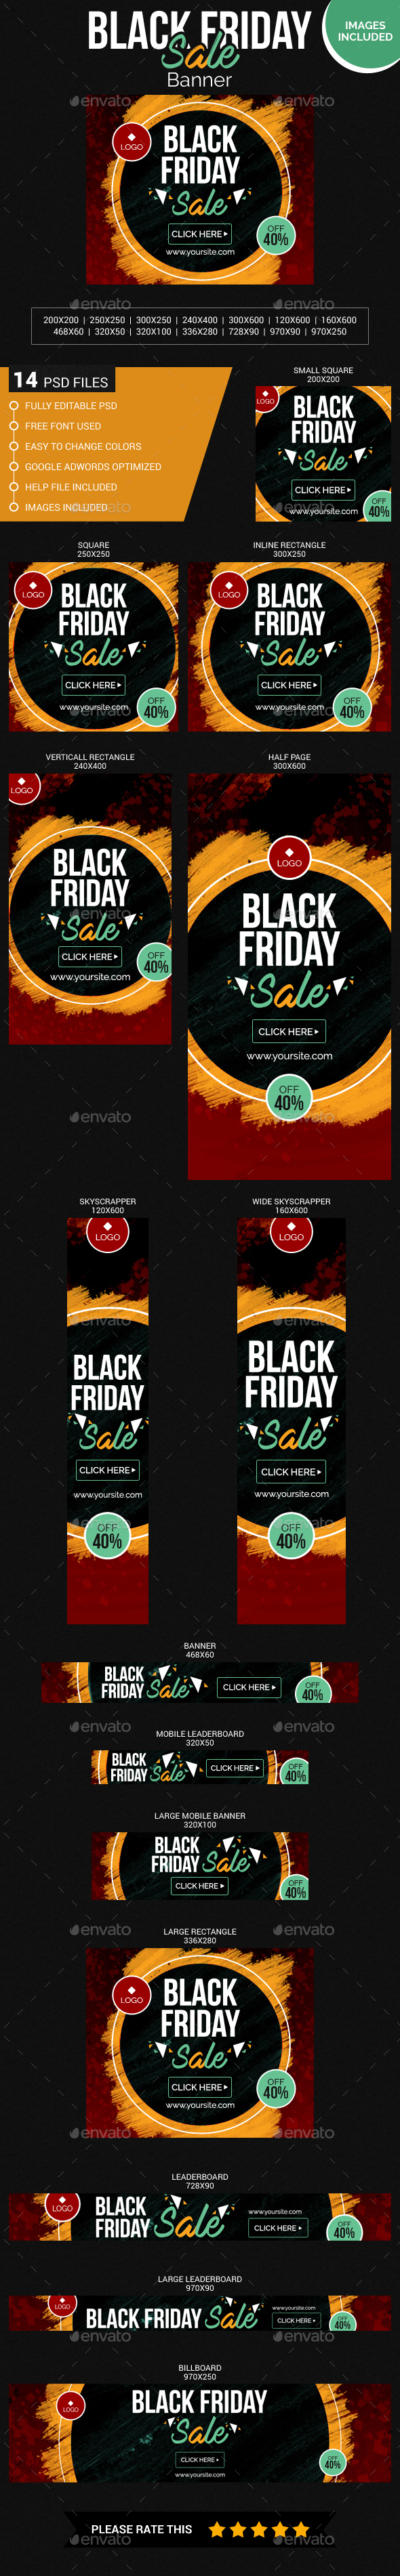 Black Friday Sale Banner - Banners & Ads Web Elements